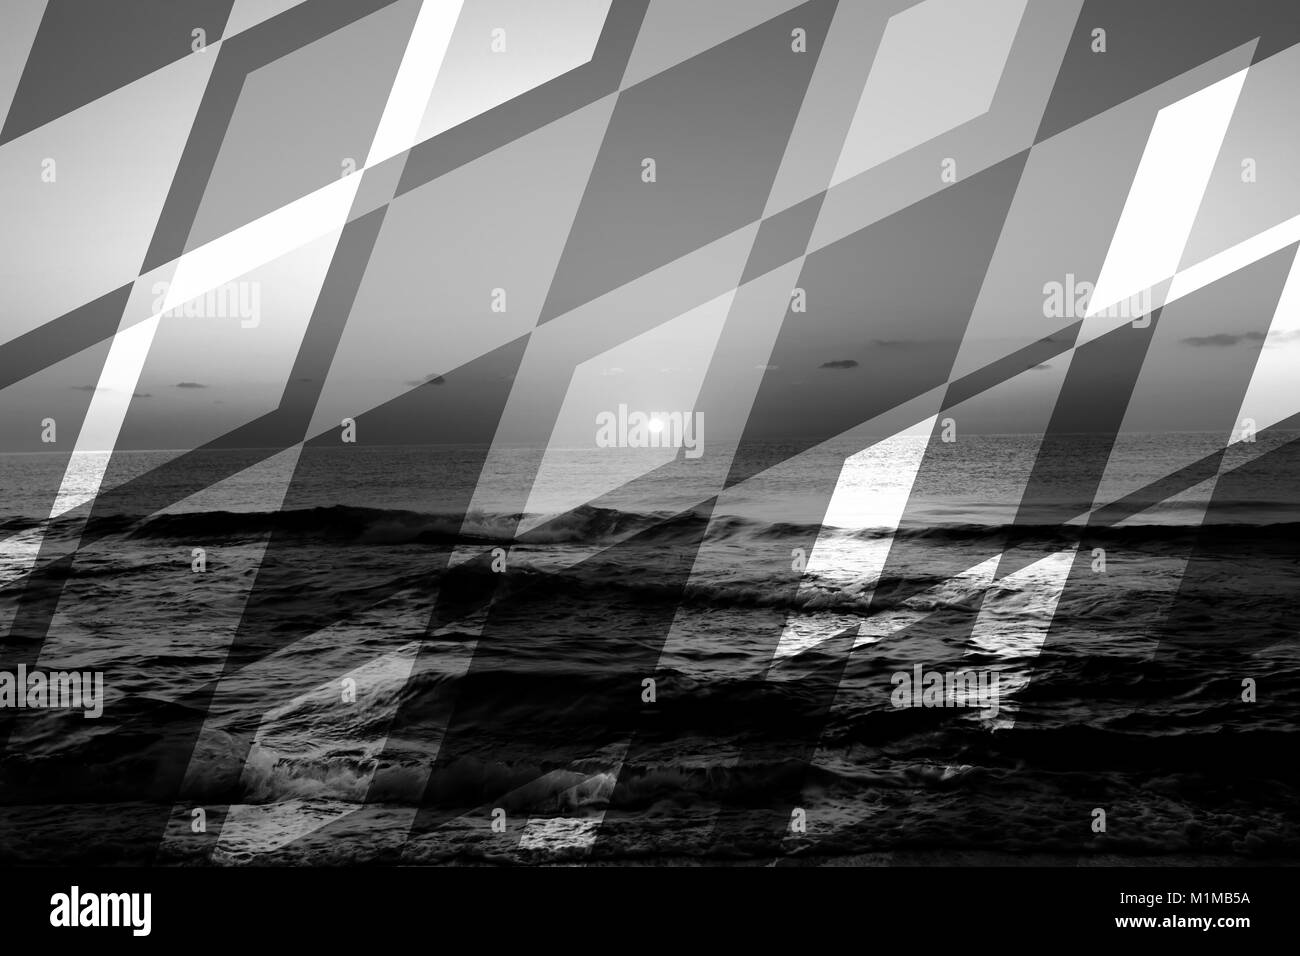 abstract black and white sea geometric background with rocks and water waves - Stock Image